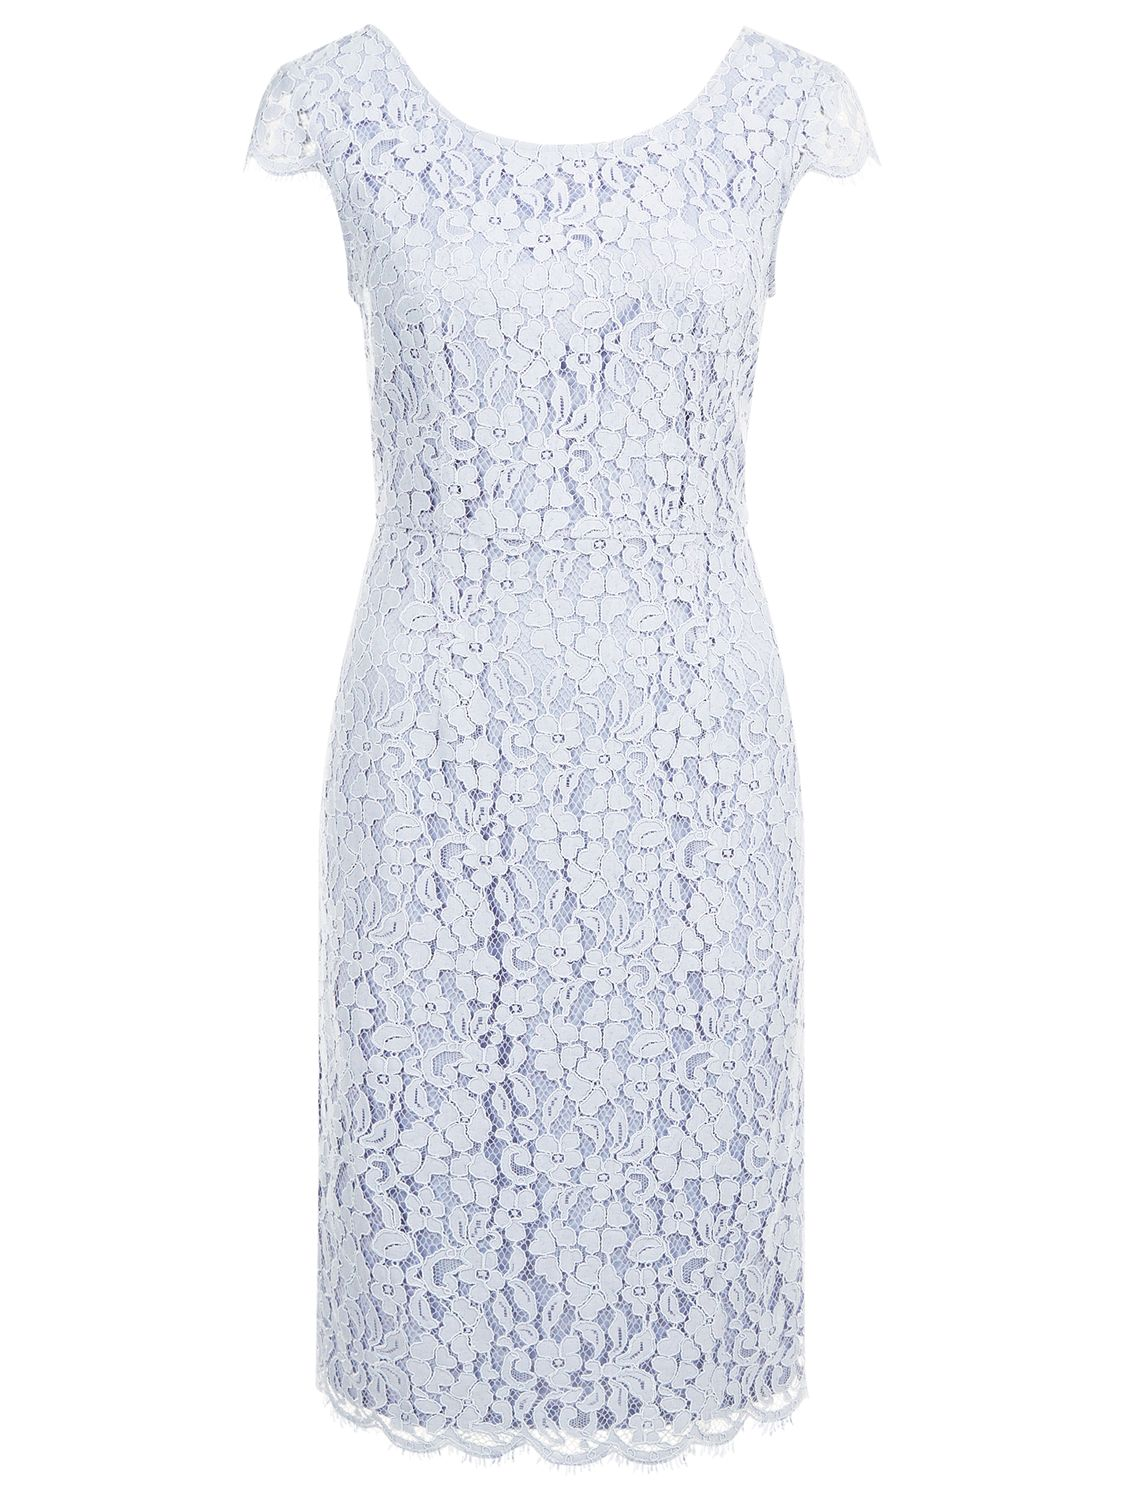 kaliko lace shift dress lilac, kaliko, lace, shift, dress, lilac, 14 16 10 18 12 20 8, women, plus size, womens dresses, gifts, wedding, wedding clothing, mother of the bride, female guests, 1887375